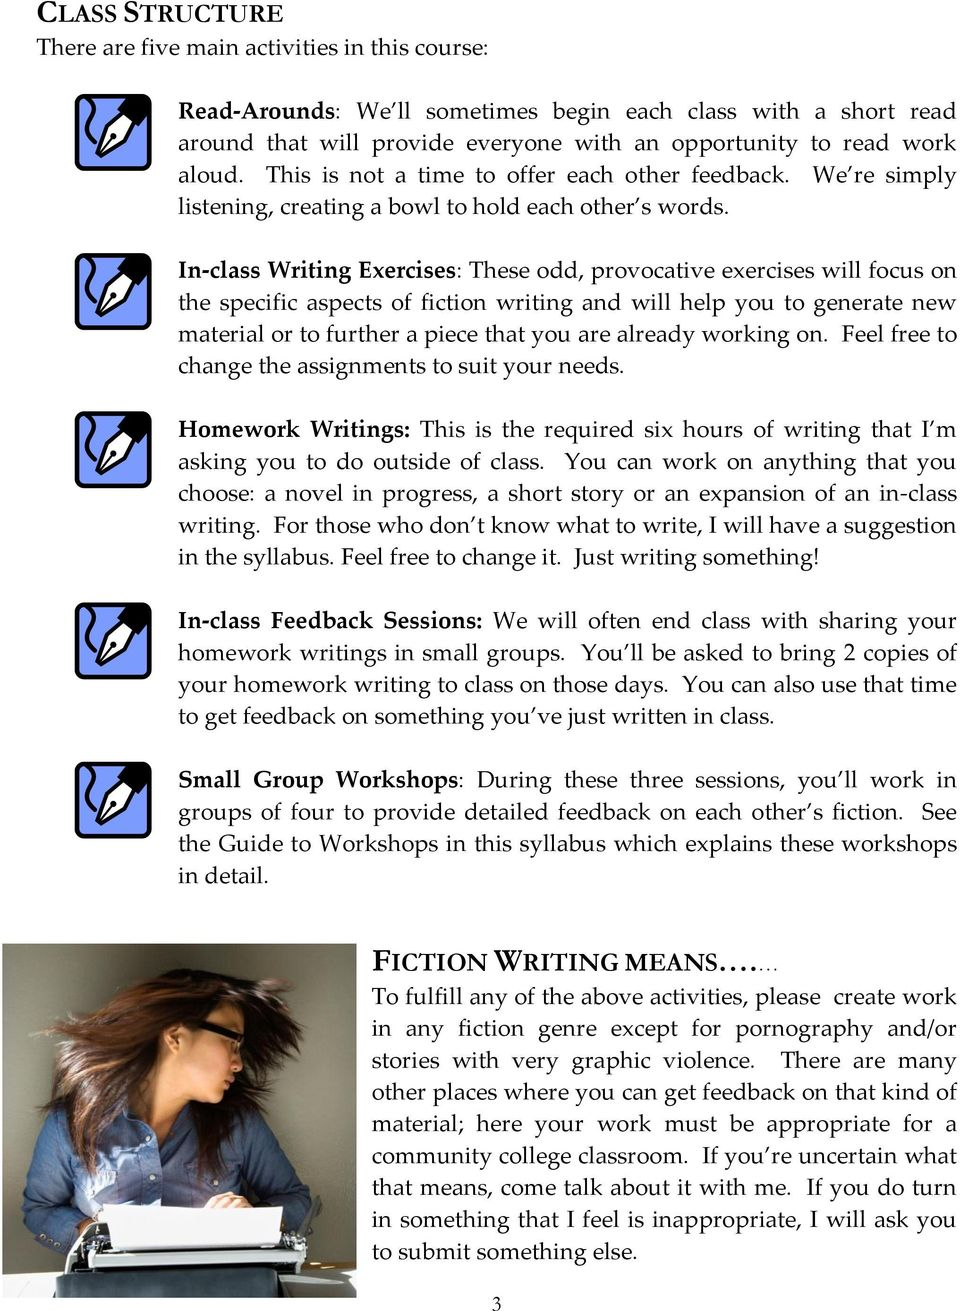 In-class Writing Exercises: These odd, provocative exercises will focus on the specific aspects of fiction writing and will help you to generate new material or to further a piece that you are